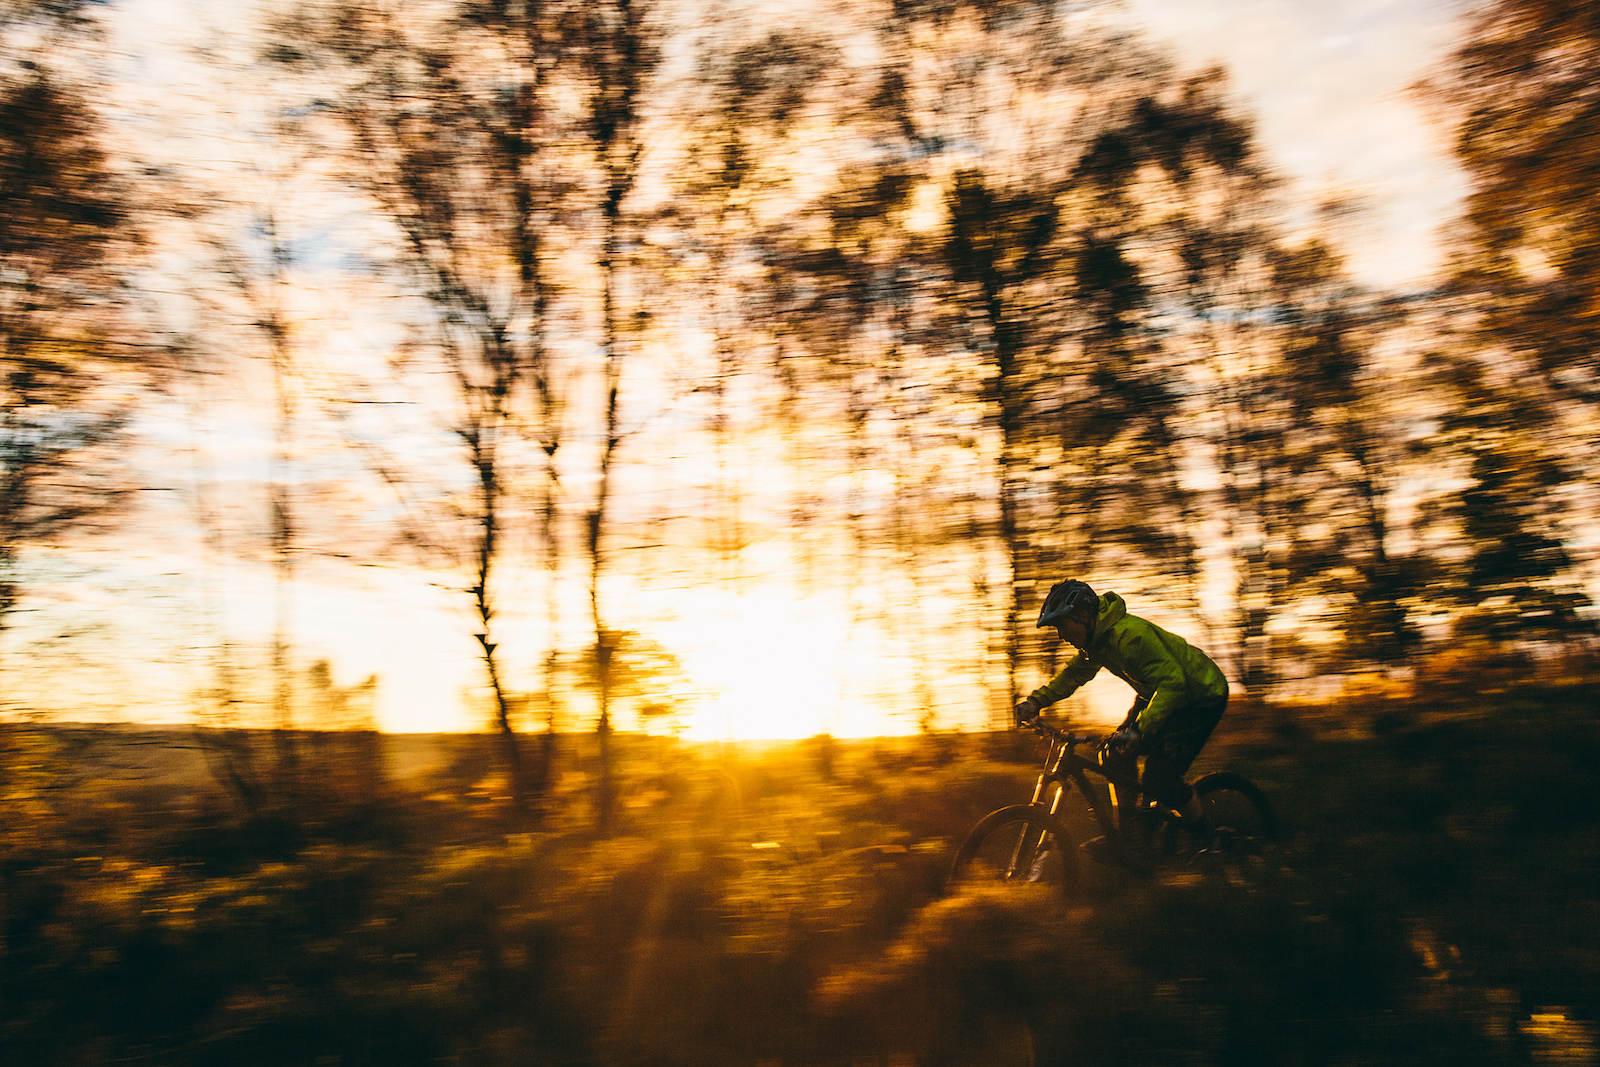 Riding the Airdrop Edit on our local trails in Sheffield for the Golden Hour video